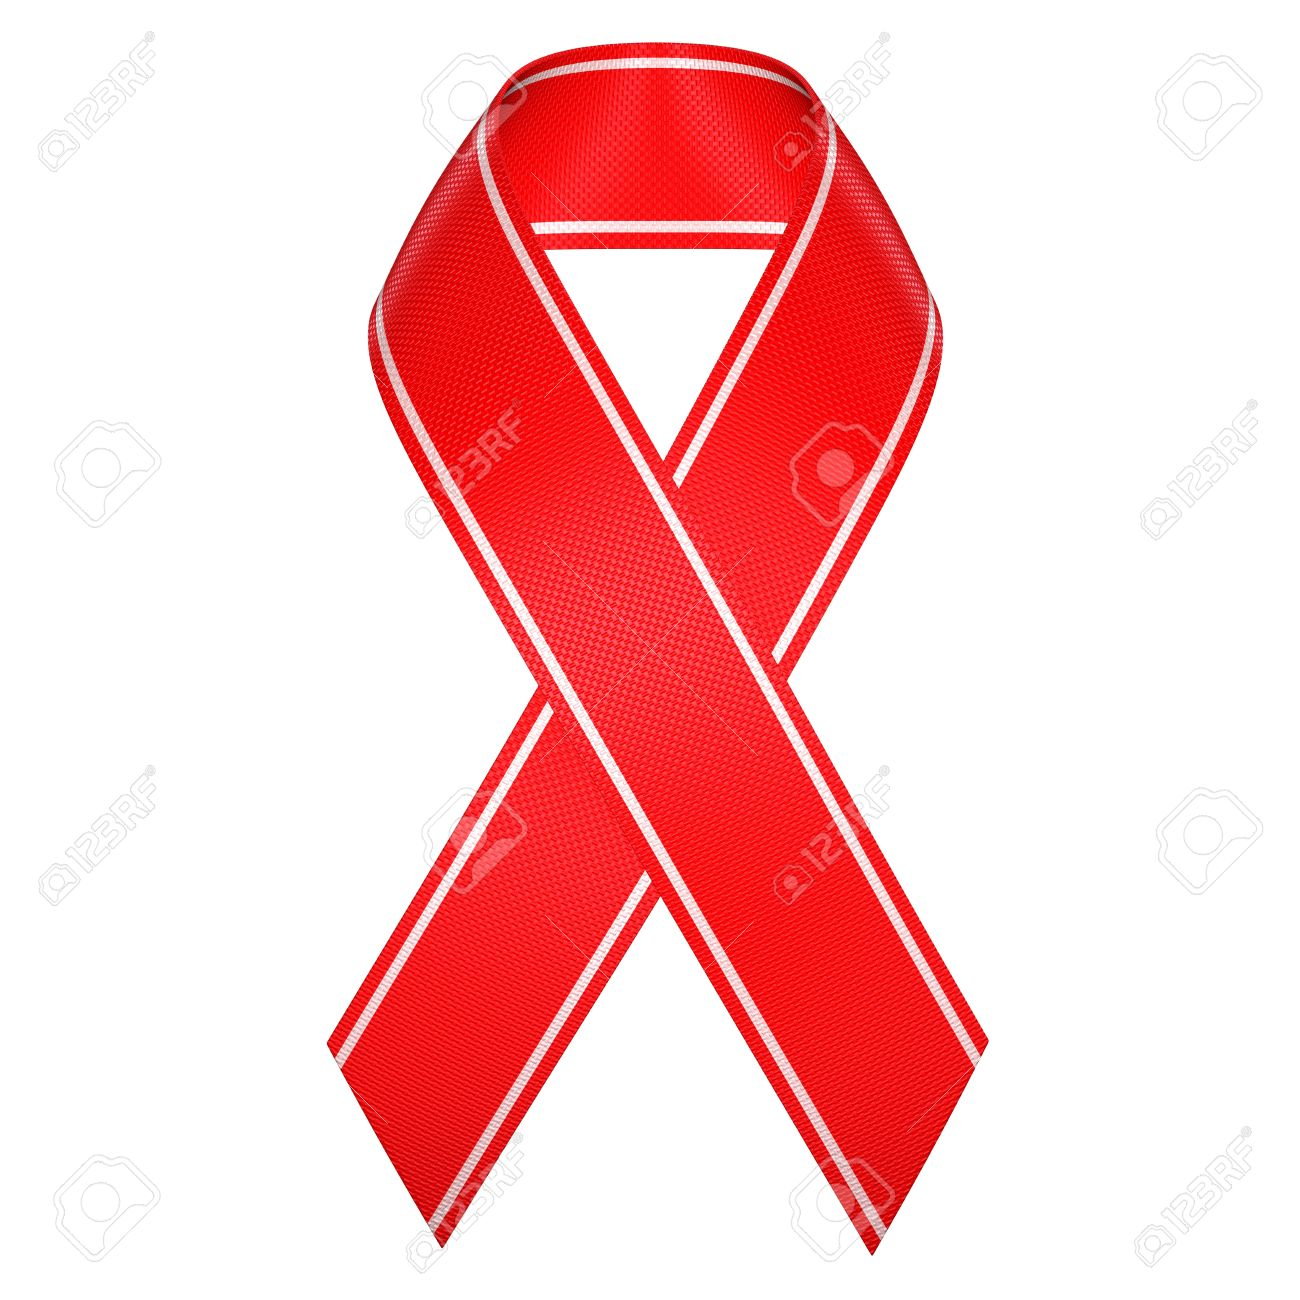 Aids Red Ribbon Symbol Isolated Stock Photo Picture And Royalty